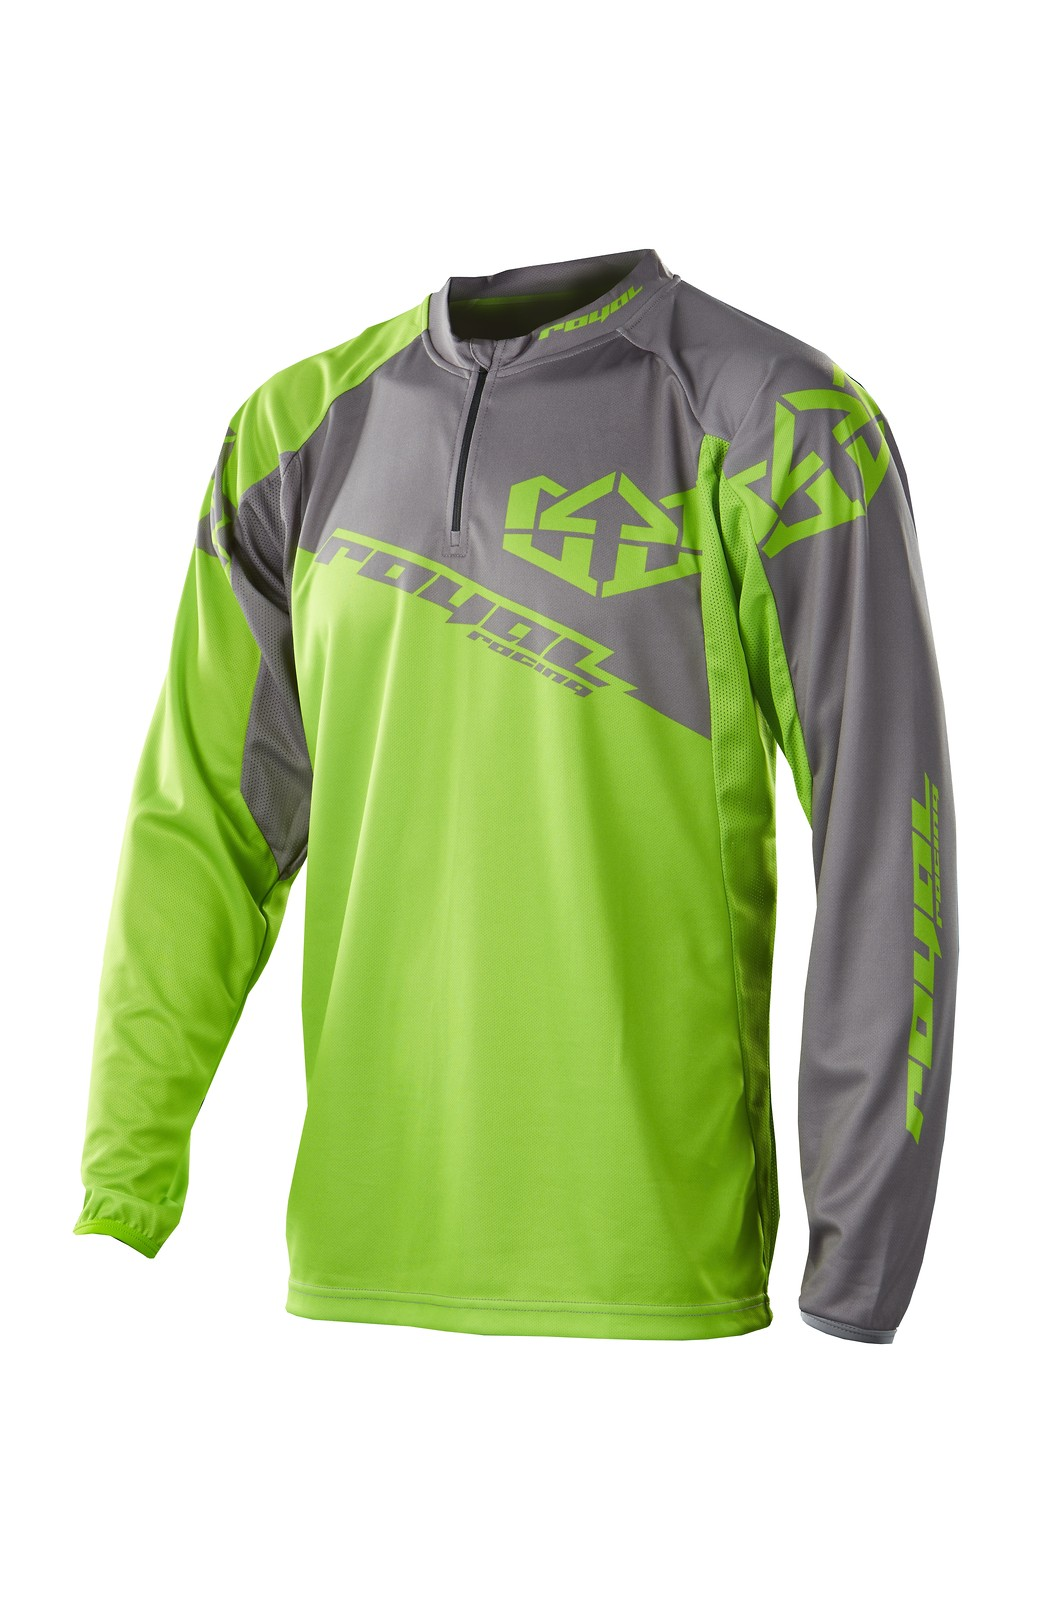 Stage-Jersey-GRY-GRN-F